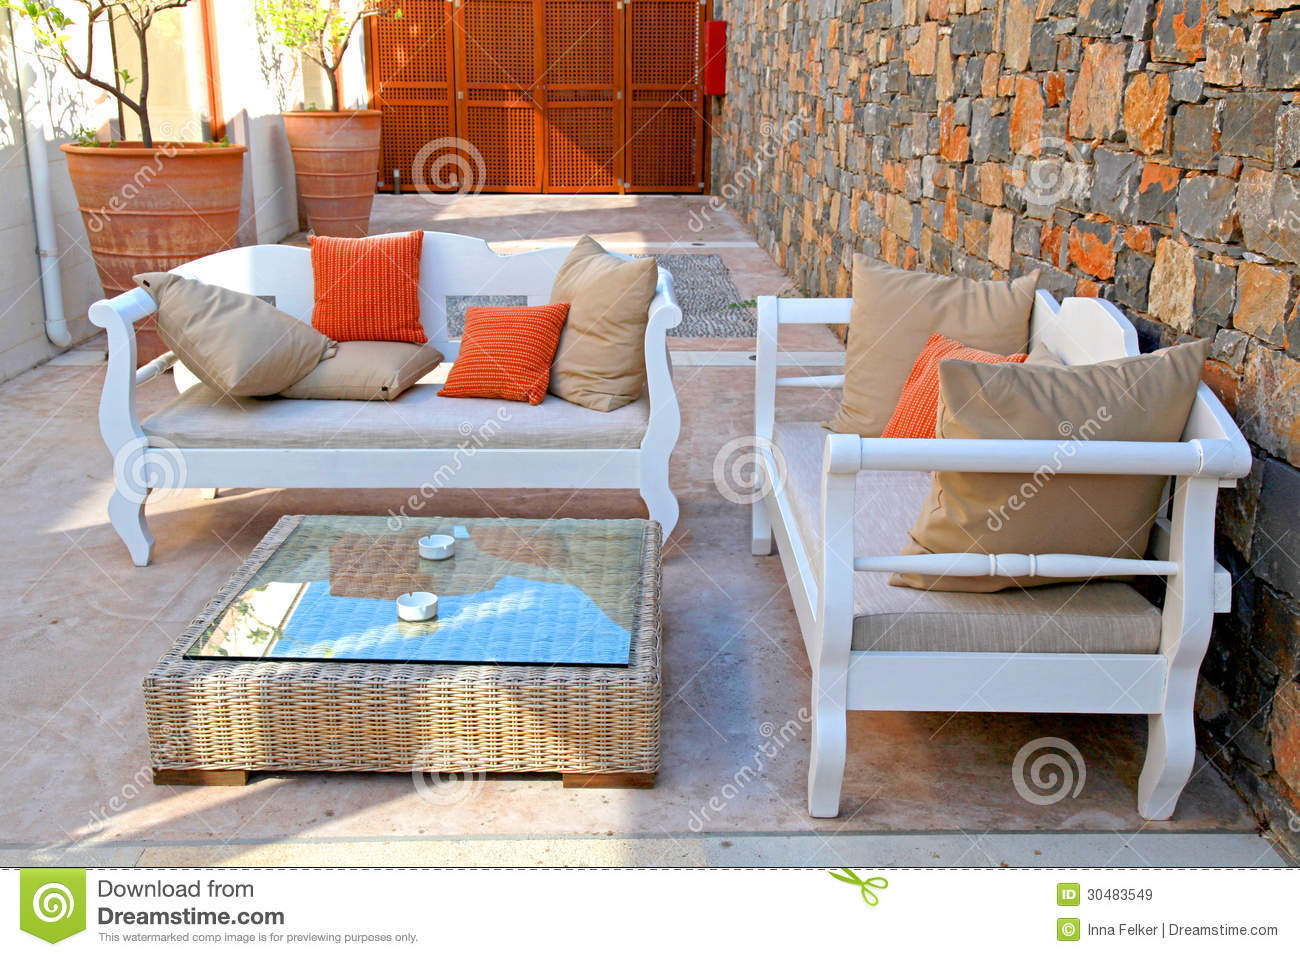 ... White Outdoor Furniture Royalty Free Stock Images - Image: 30483549